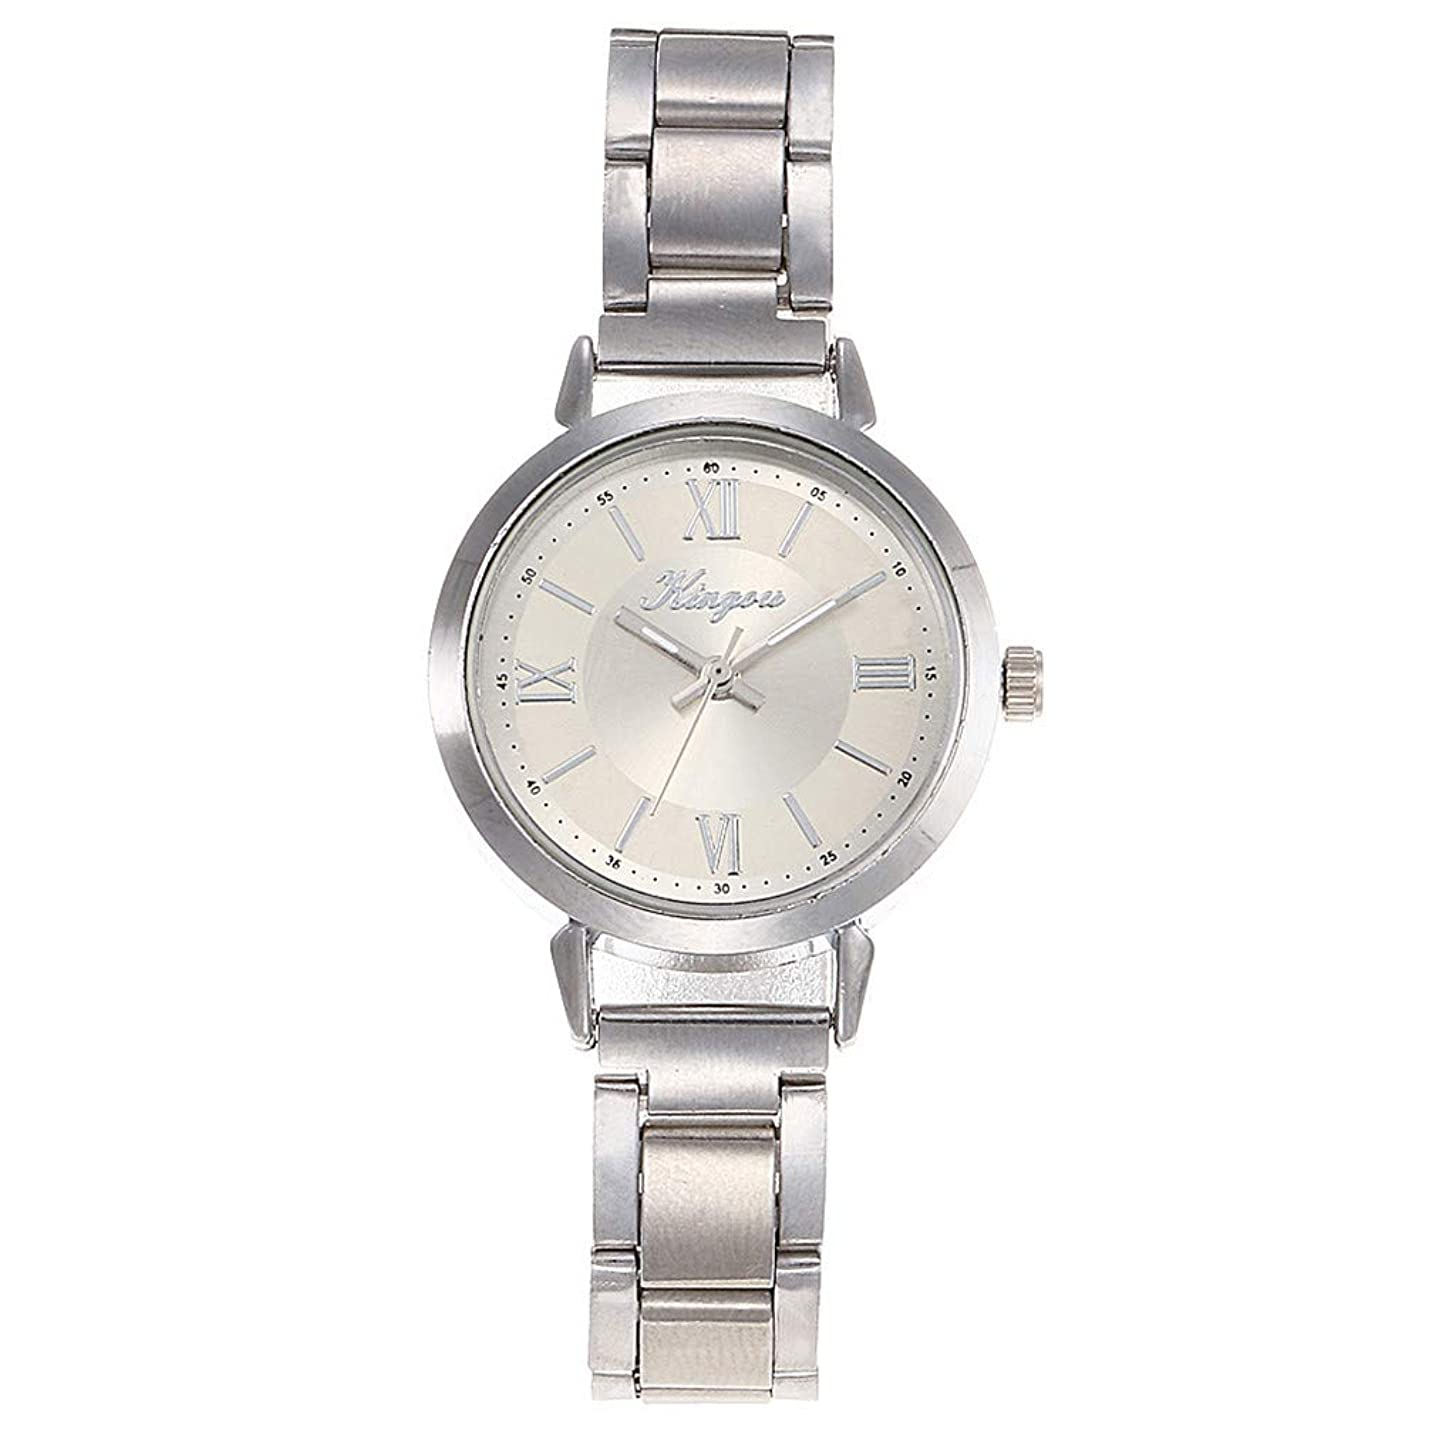 LUCAMORE Women Analog Watches with Stainless Steel Belt,Fashion Classic Dress Ladies Business Watches Gift